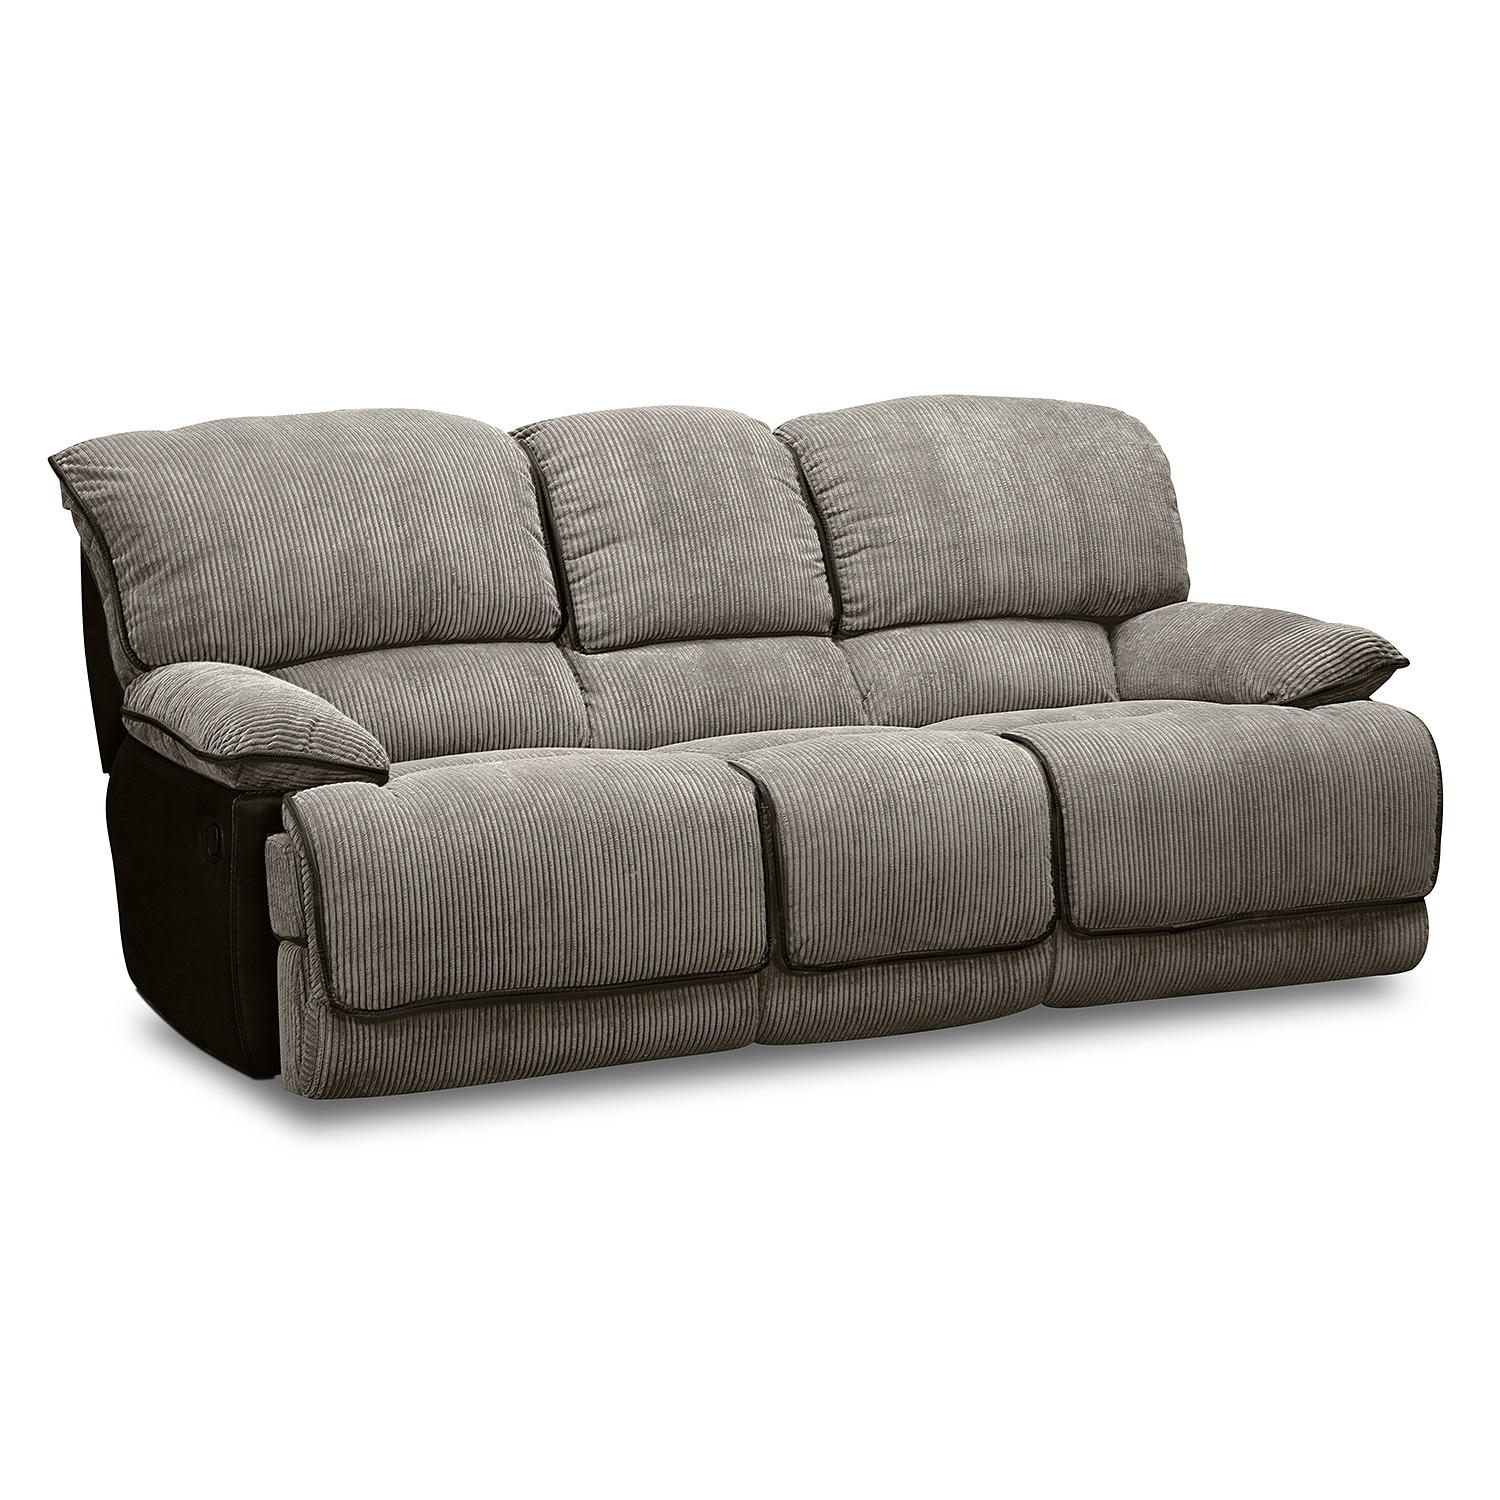 Laguna Ii Dual Reclining Sofa Value City Furniture